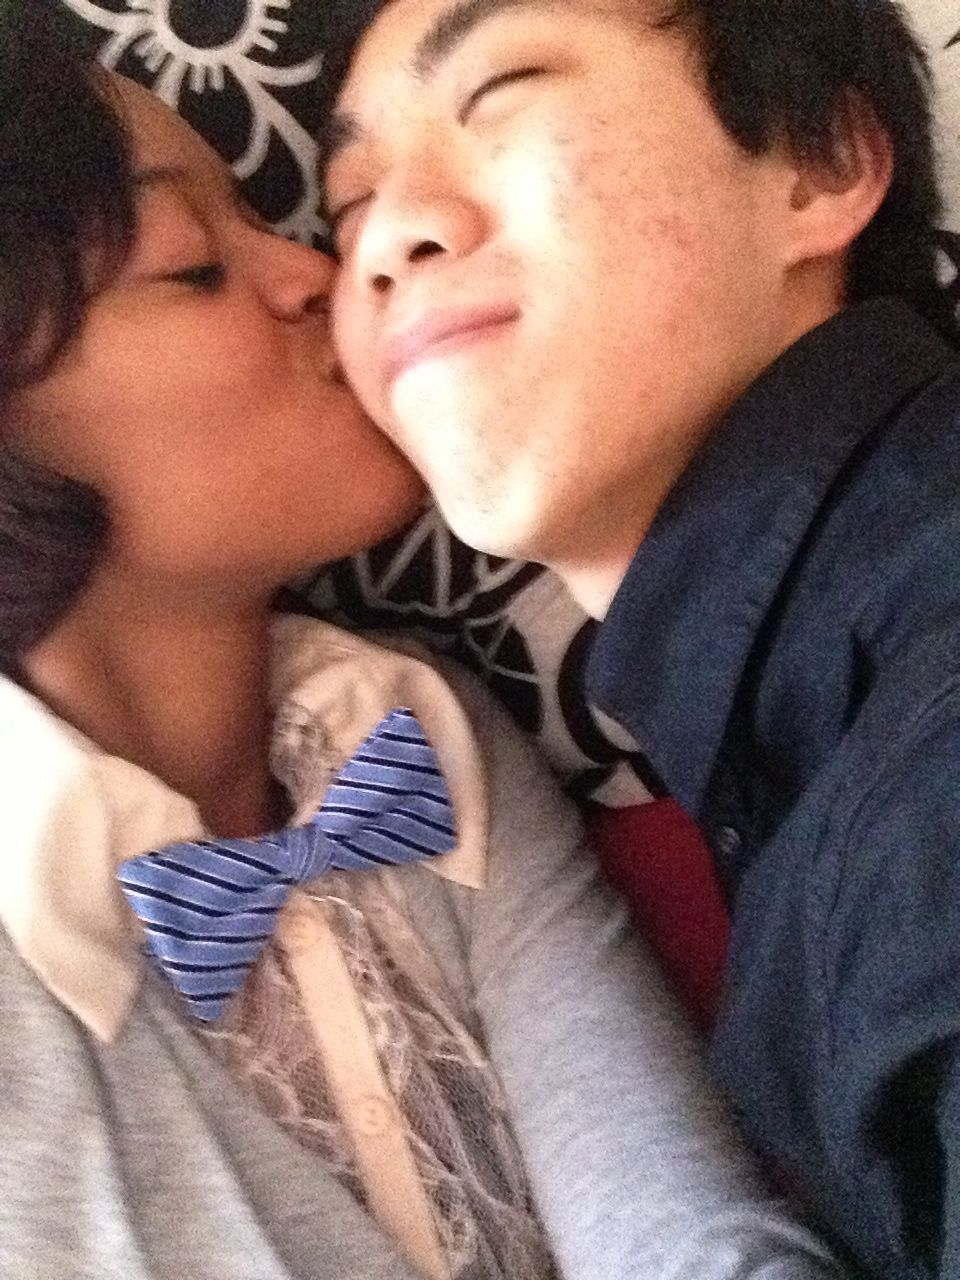 Black girl and asian guy kissing — pic 13